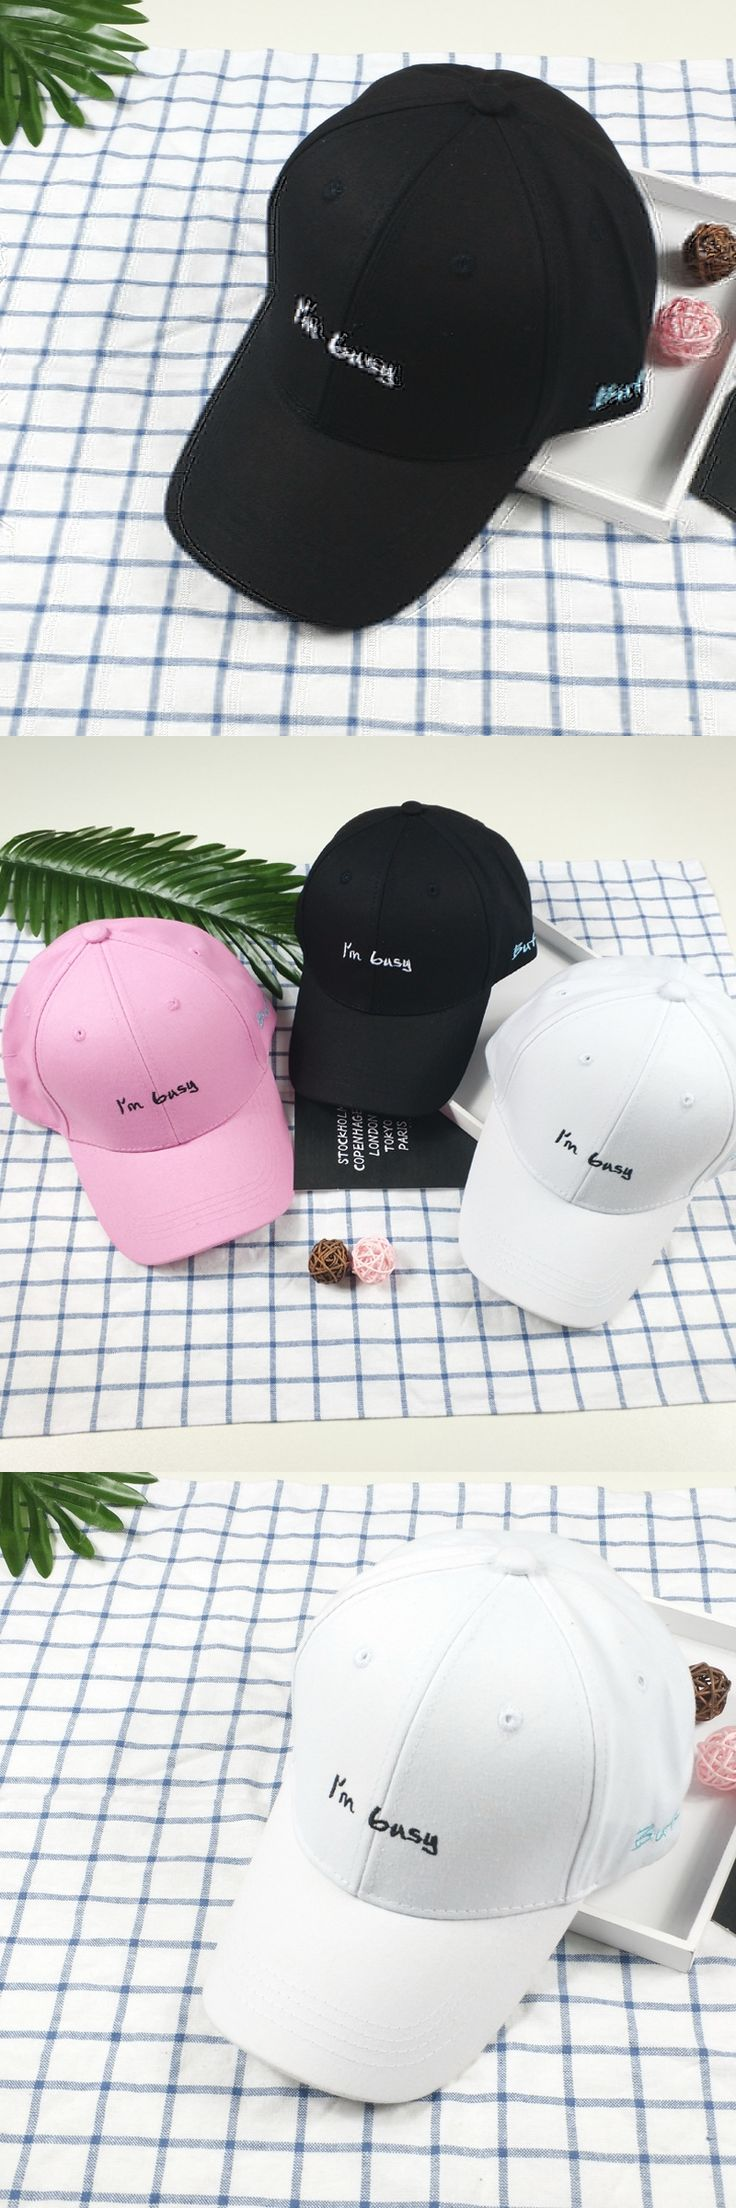 2017 Brand New Letter Embroidery Men and Women Baseball Cap Adjustable Curved Eaves Couple Sun Hat Sports Leisure Hip Hop Hat